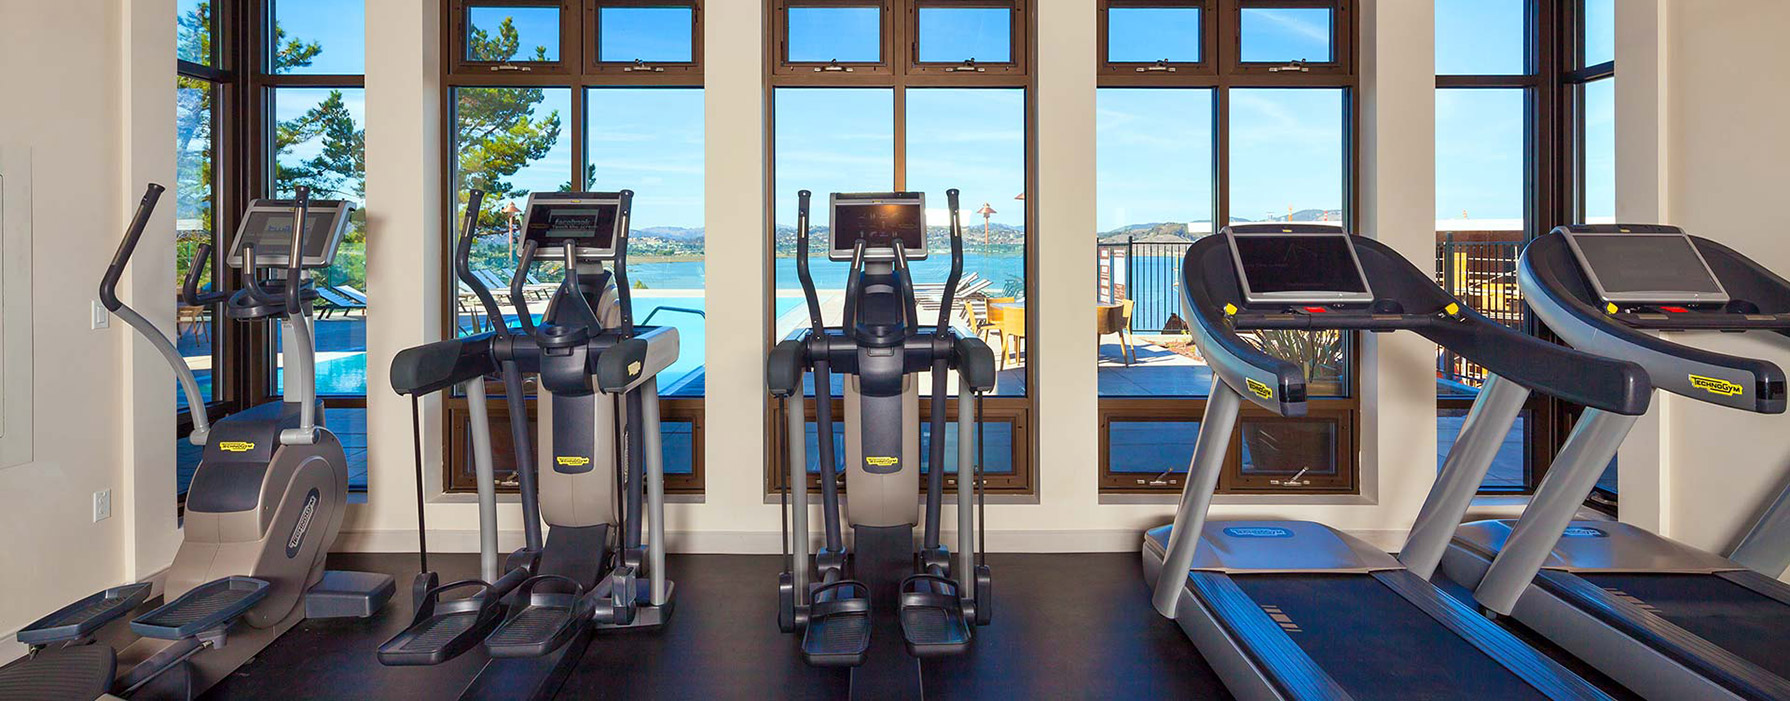 Preserve at Marin Apartment Homes - Corte Madera, CA - Workout Room